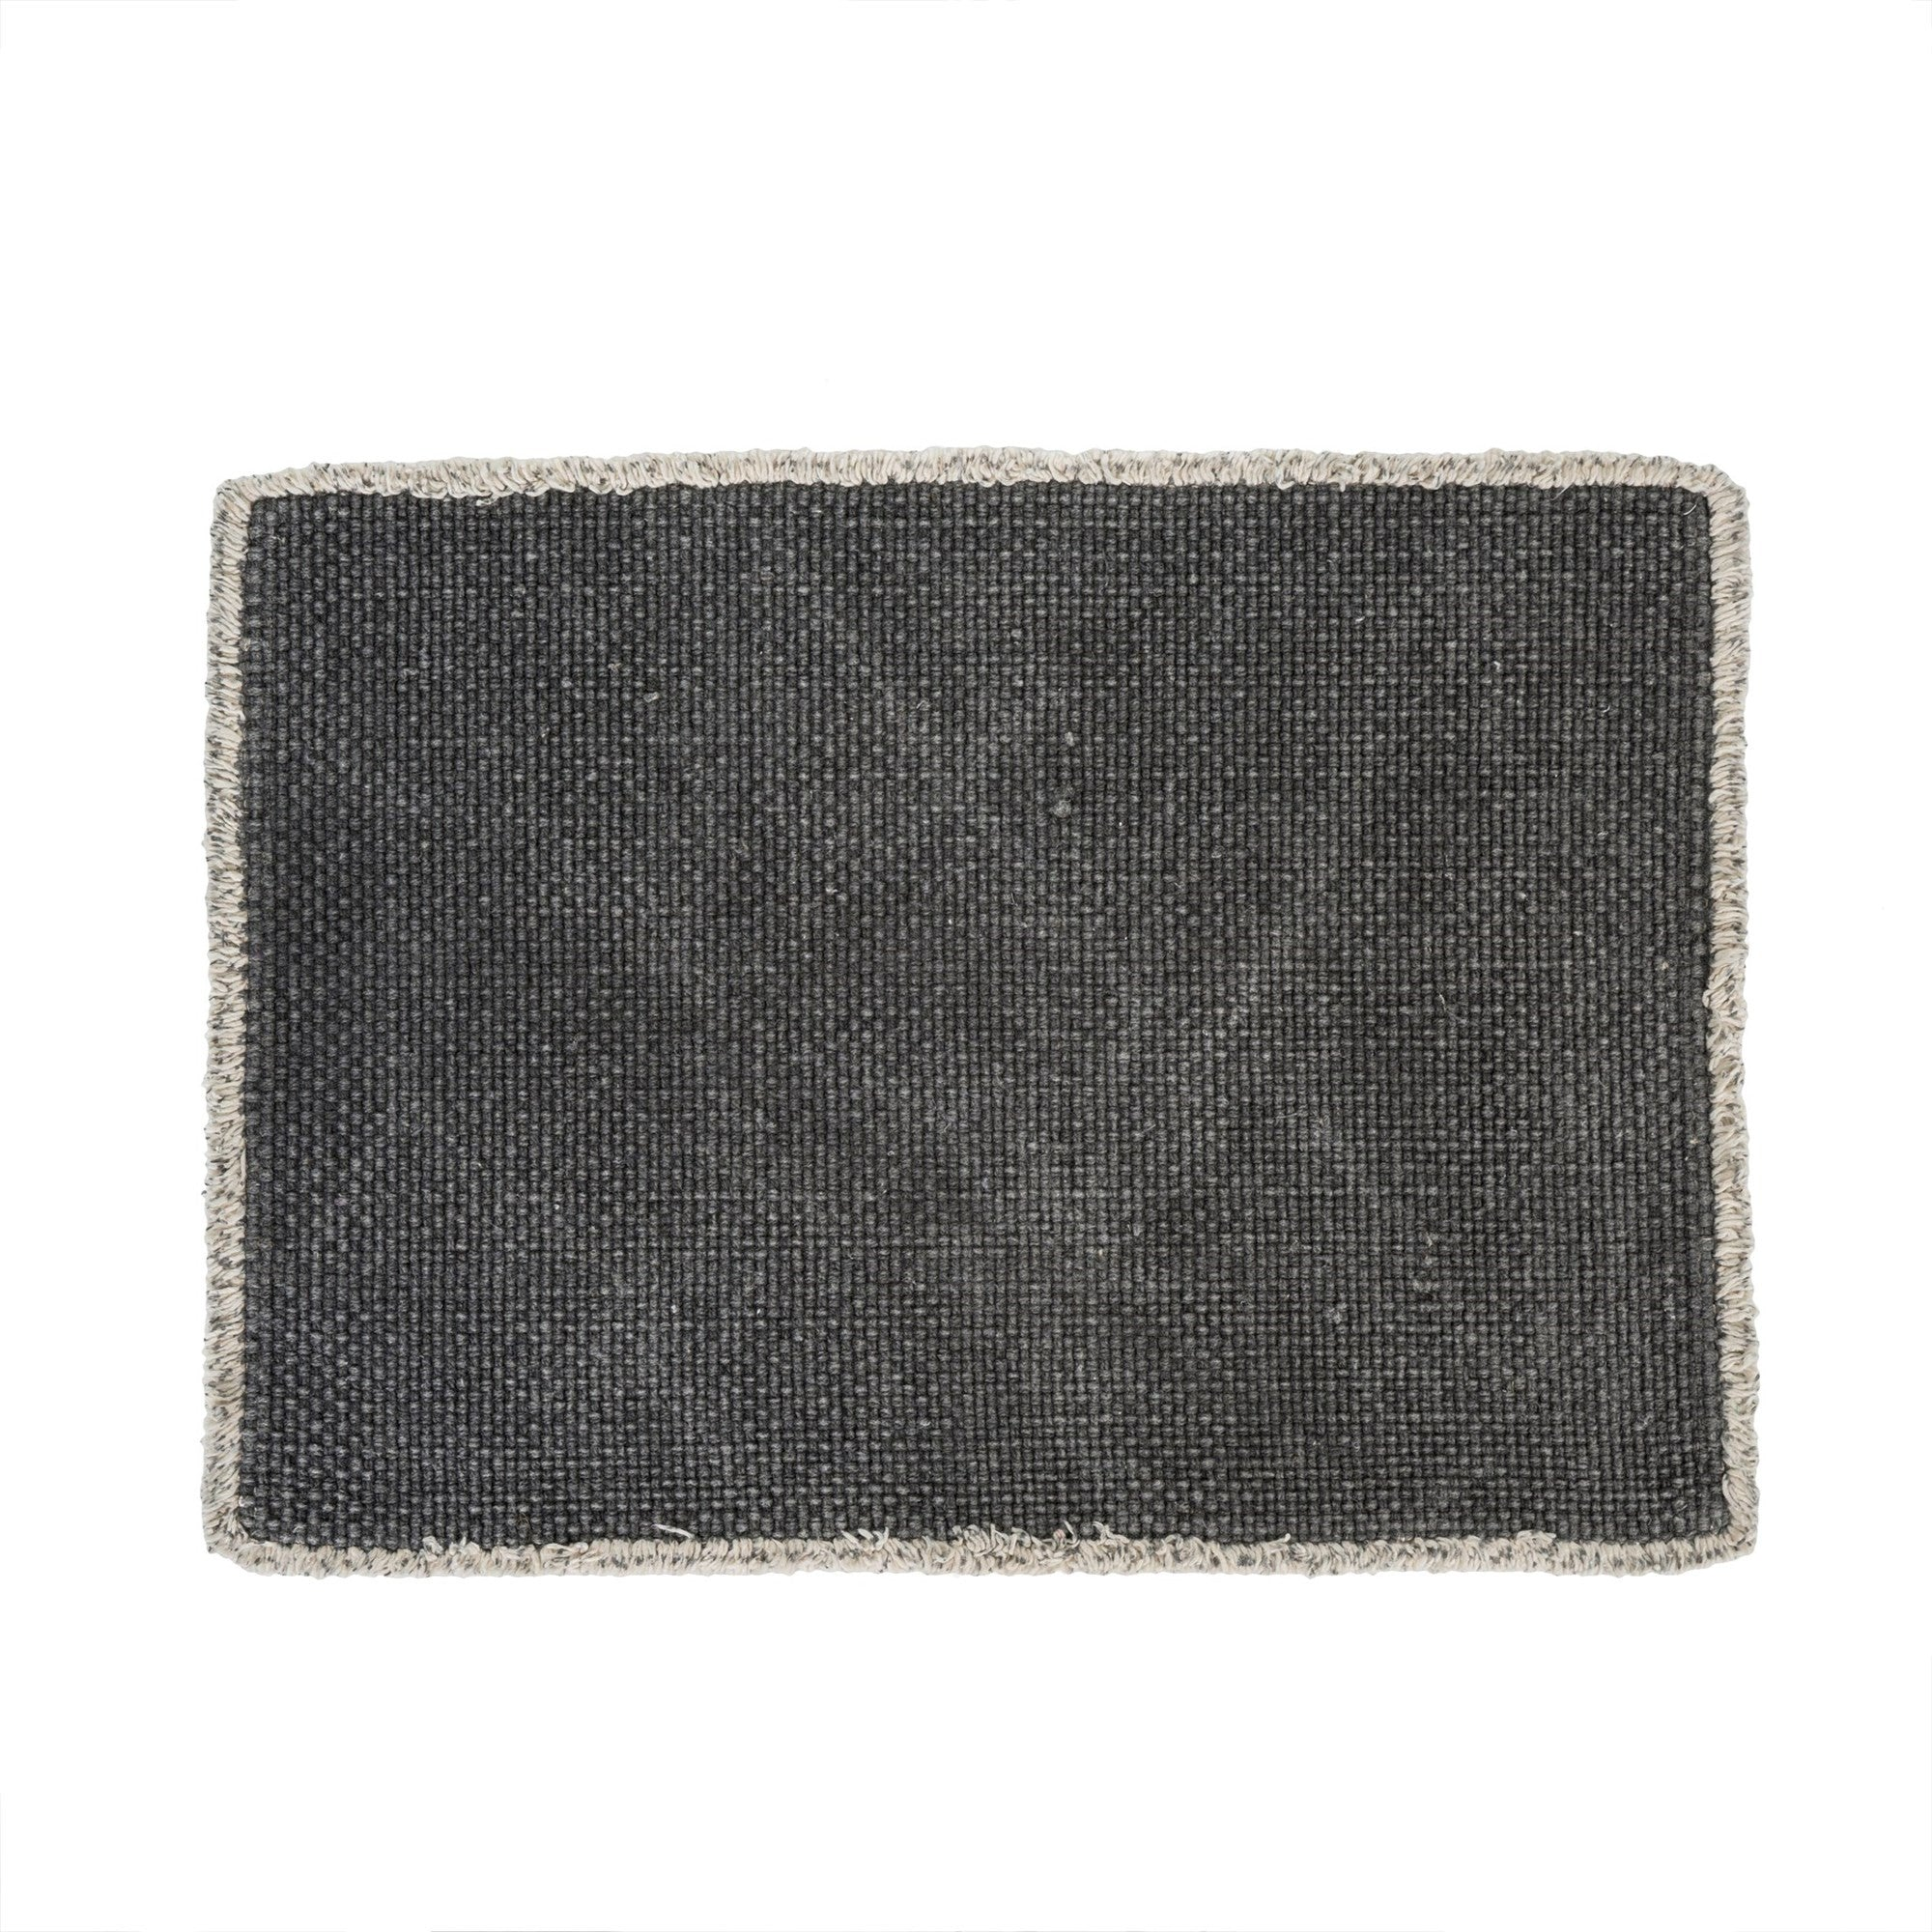 Stonewashed Placemat - Charcoal